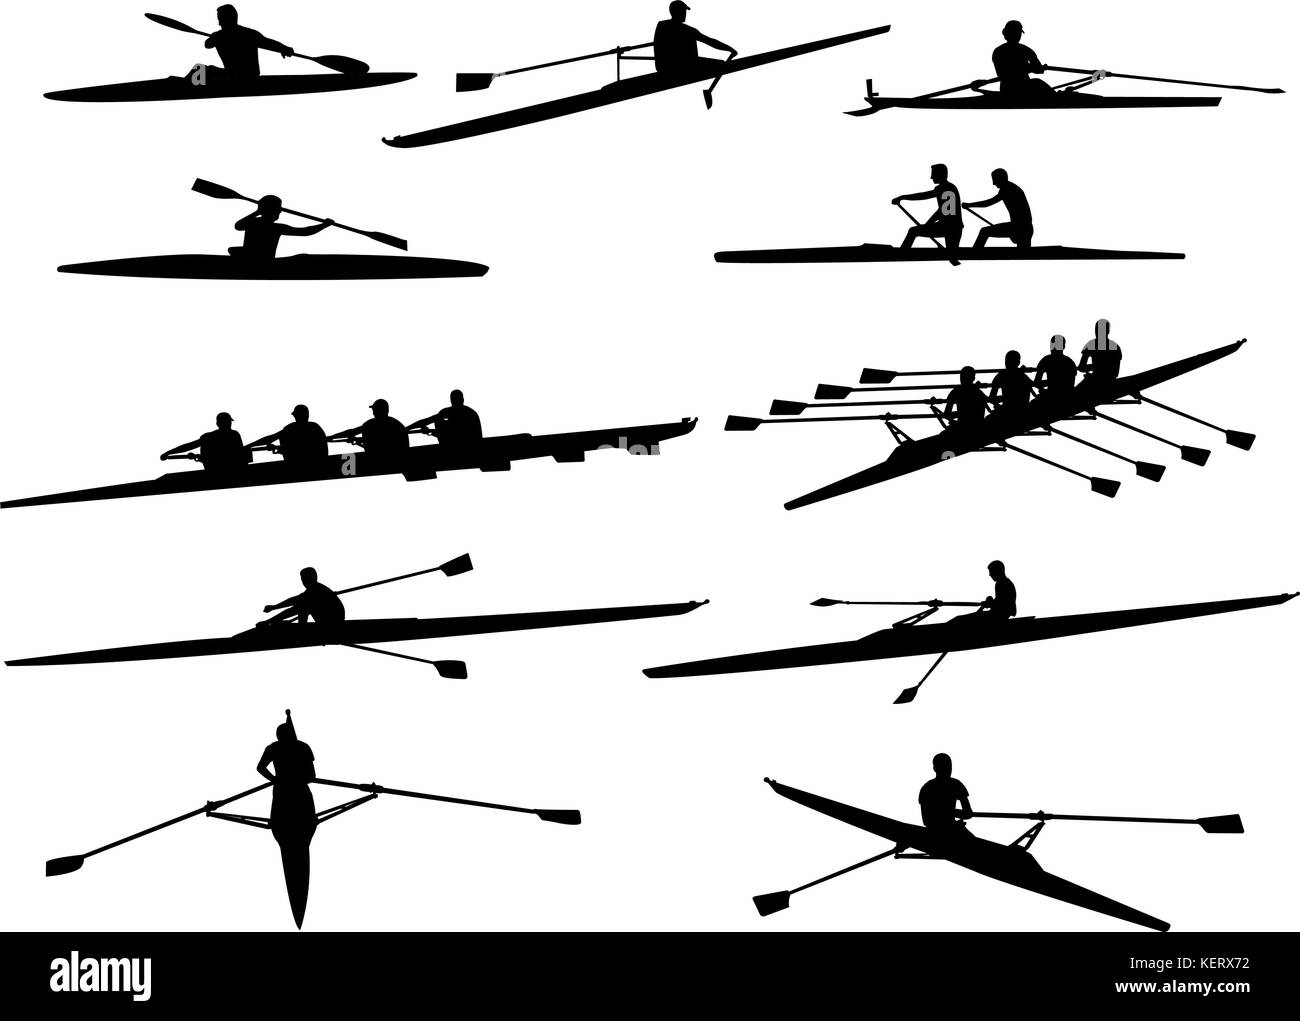 rowing silhouettes - vector - Stock Vector